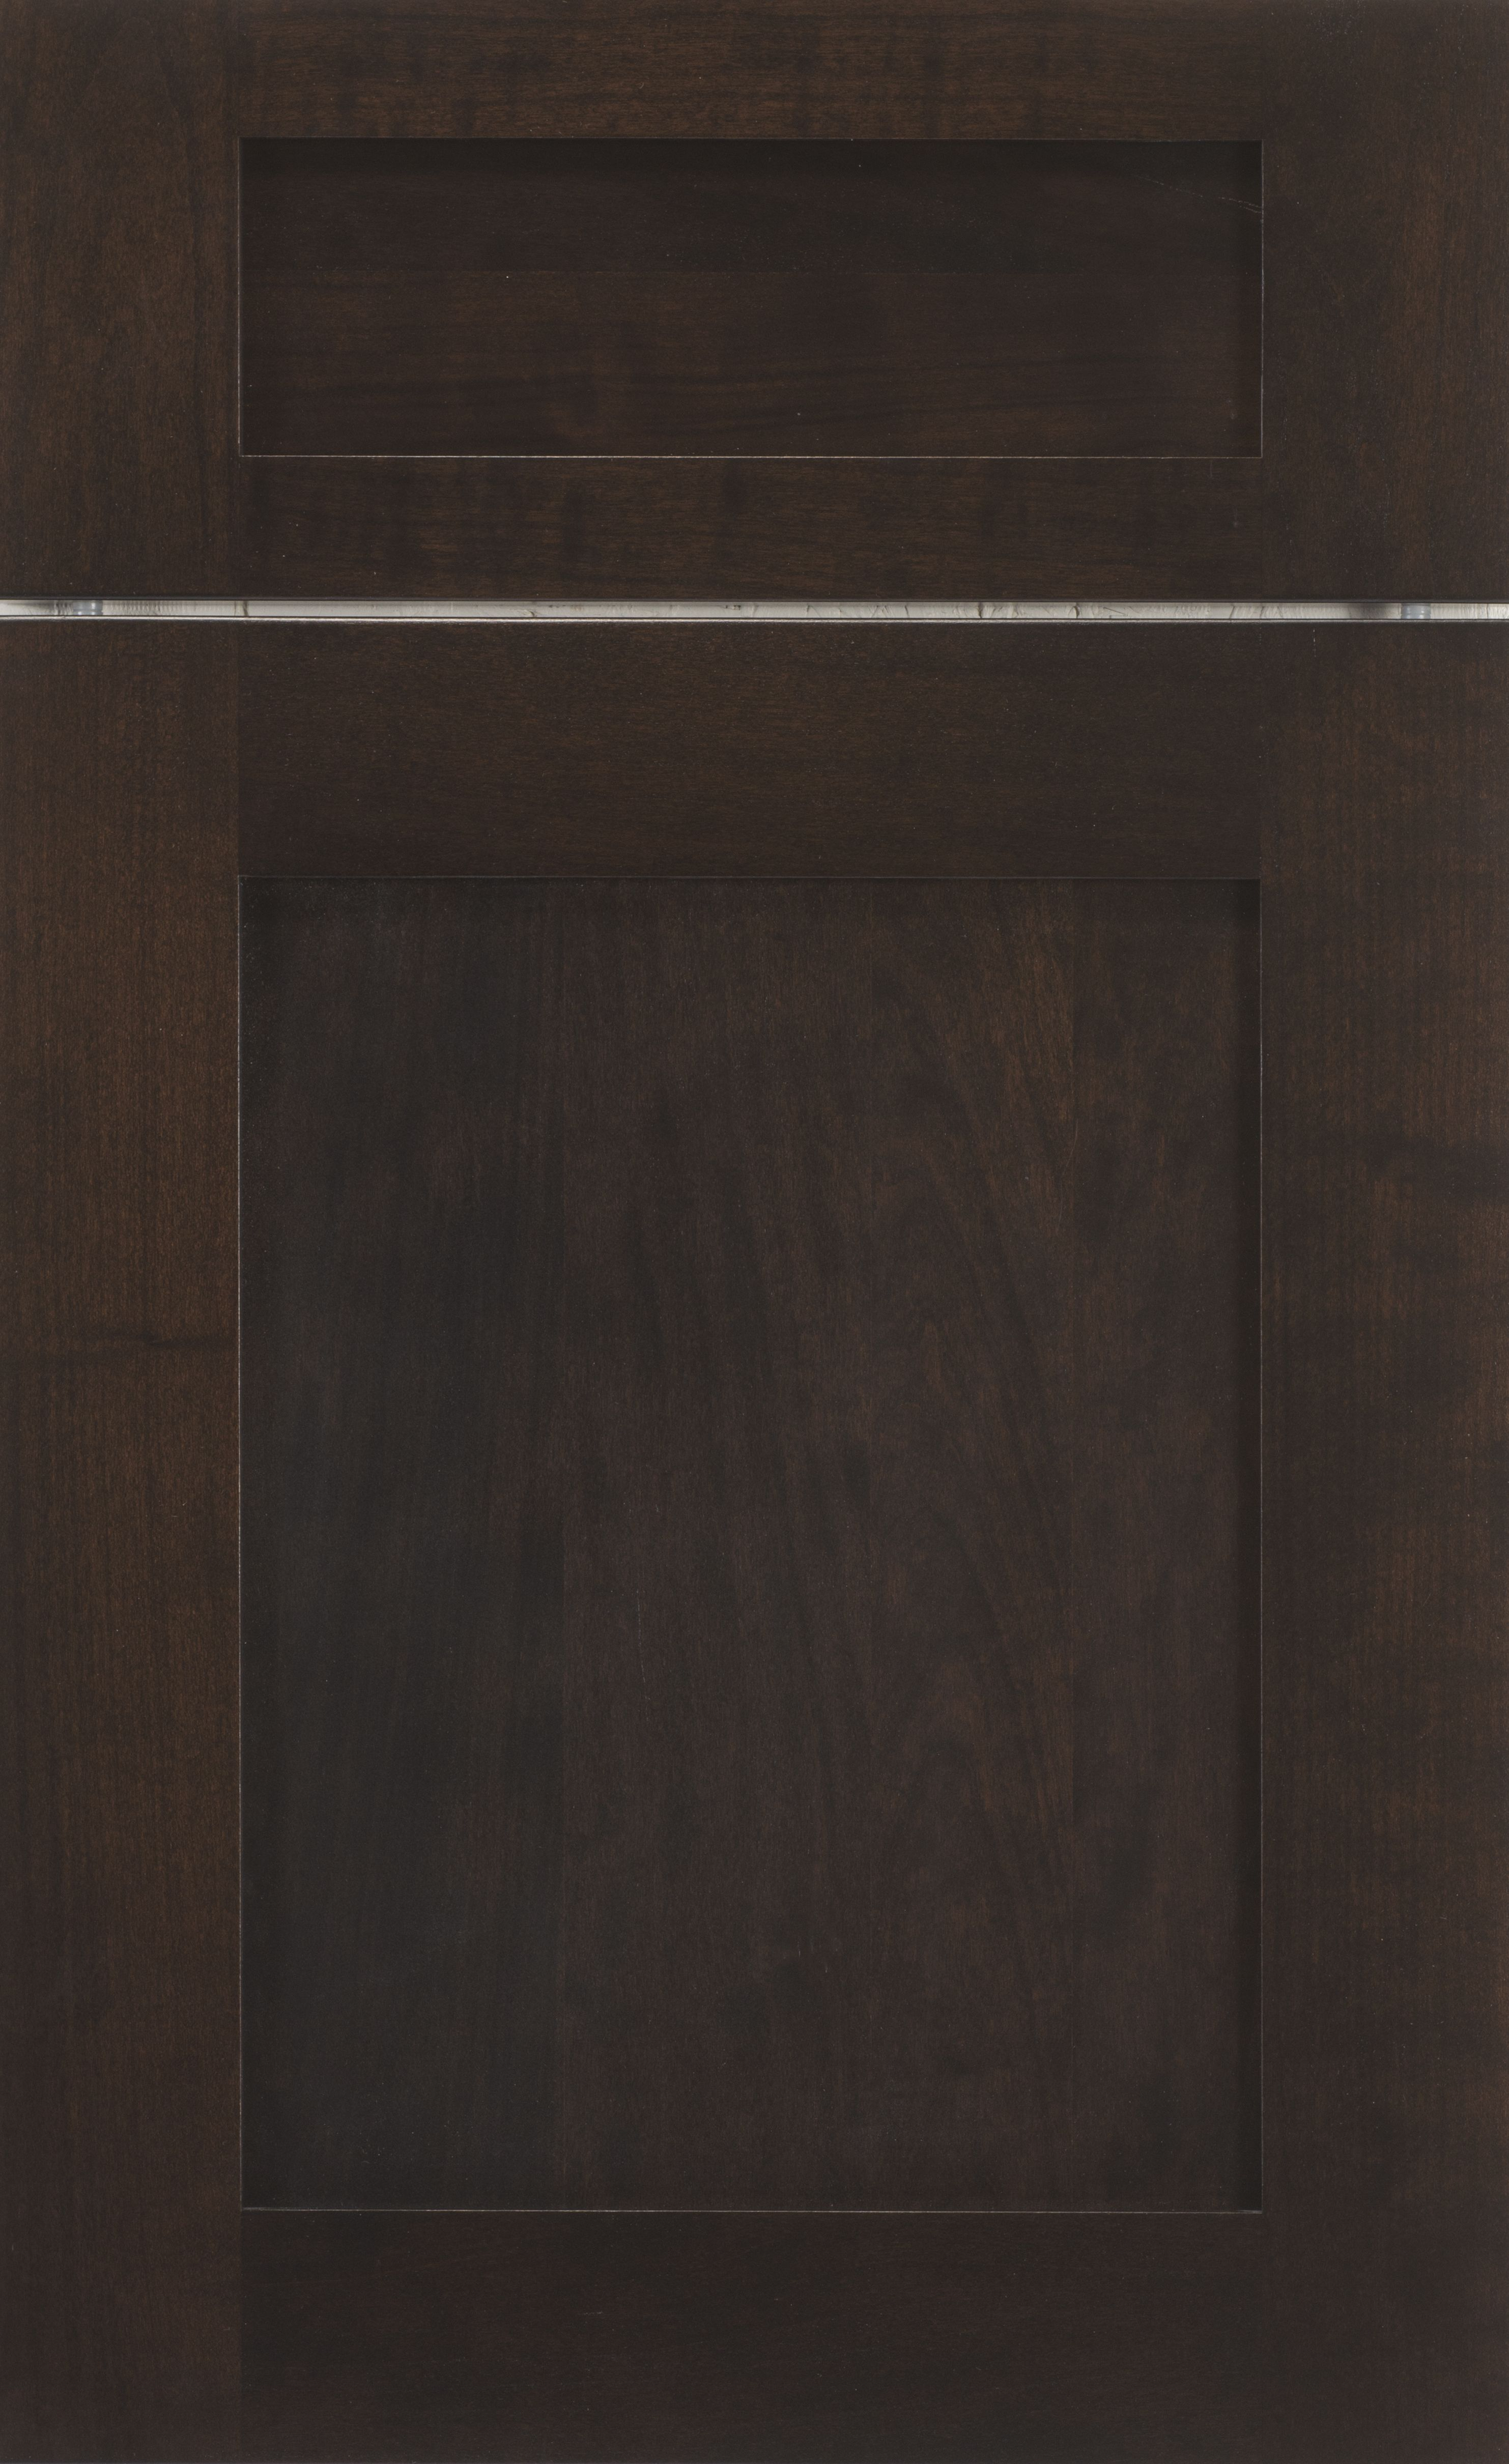 Greenwich Recessed door style by #WoodMode, shown in Java finish ...